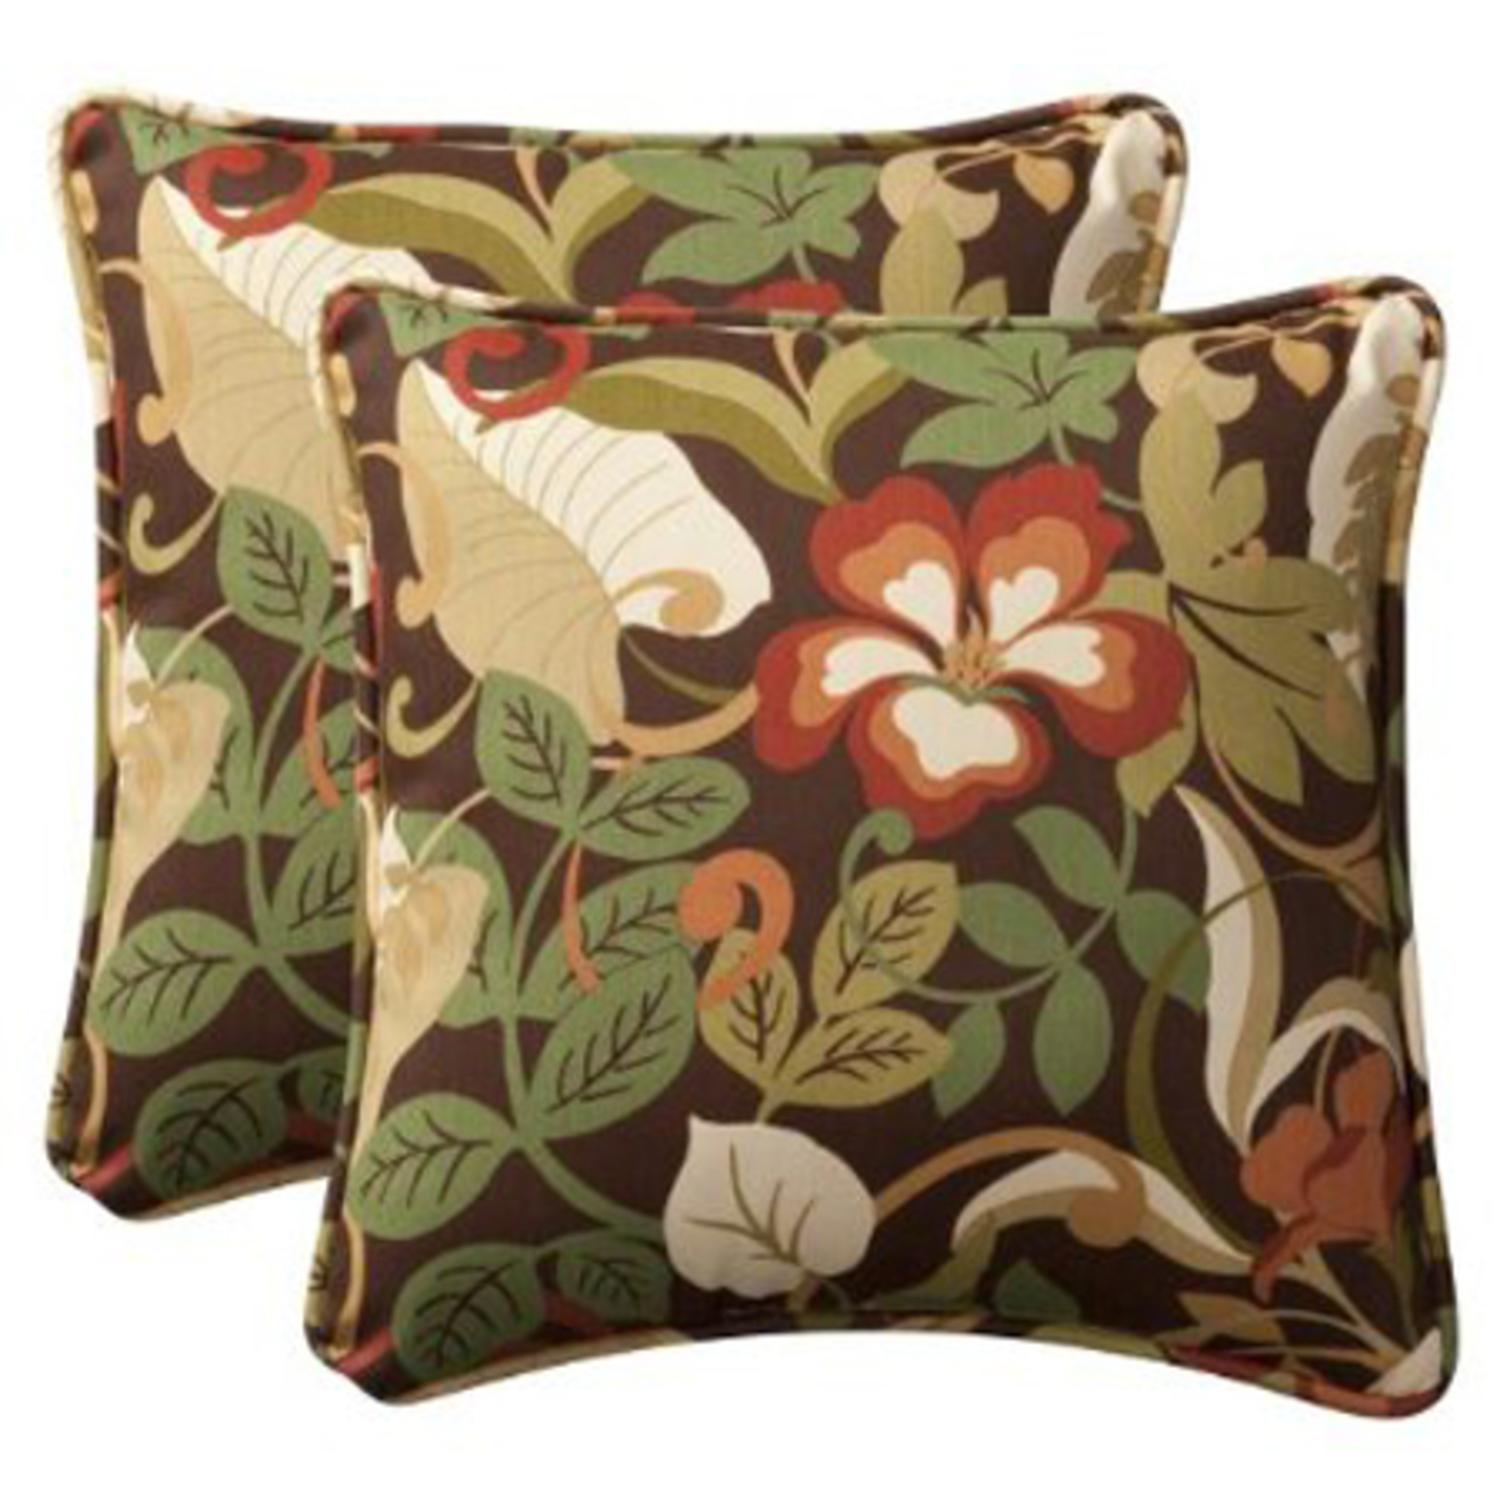 "Pack of 2 Outdoor Patio Furniture Square Throw Pillows 18.5"" - Floral Cafe"